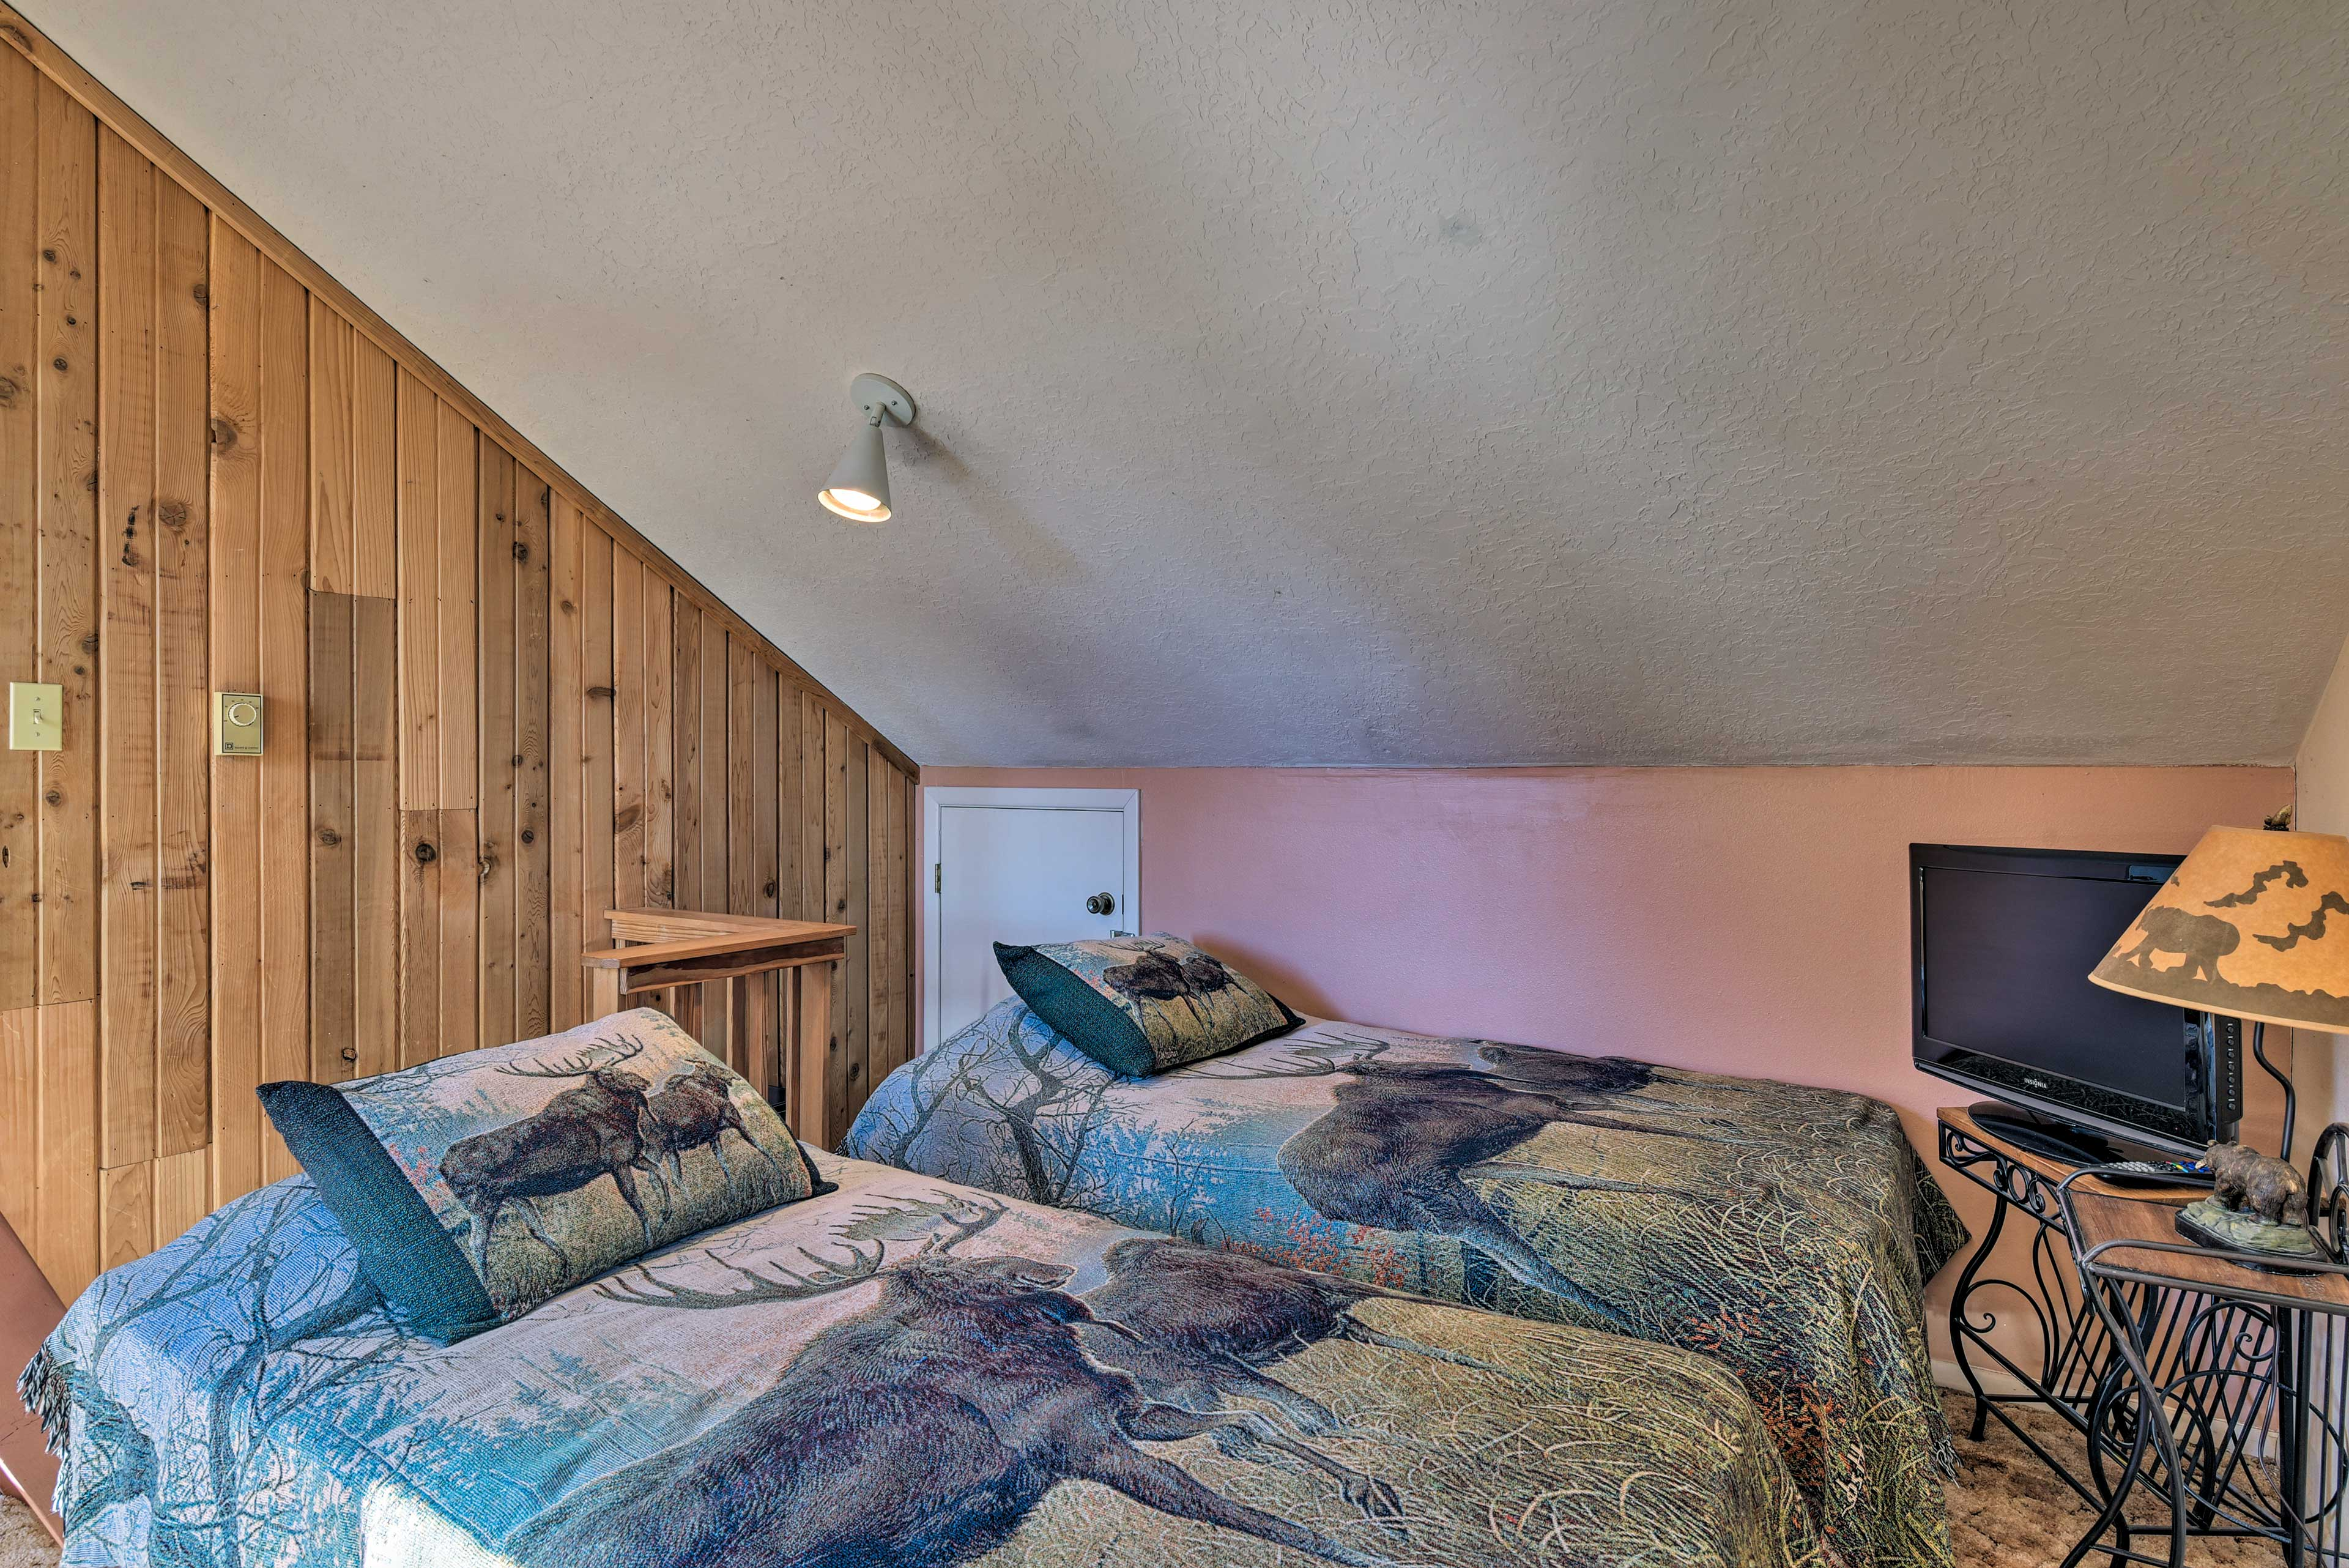 The upstairs loft features 2 twin-sized beds, great for kids and teens!